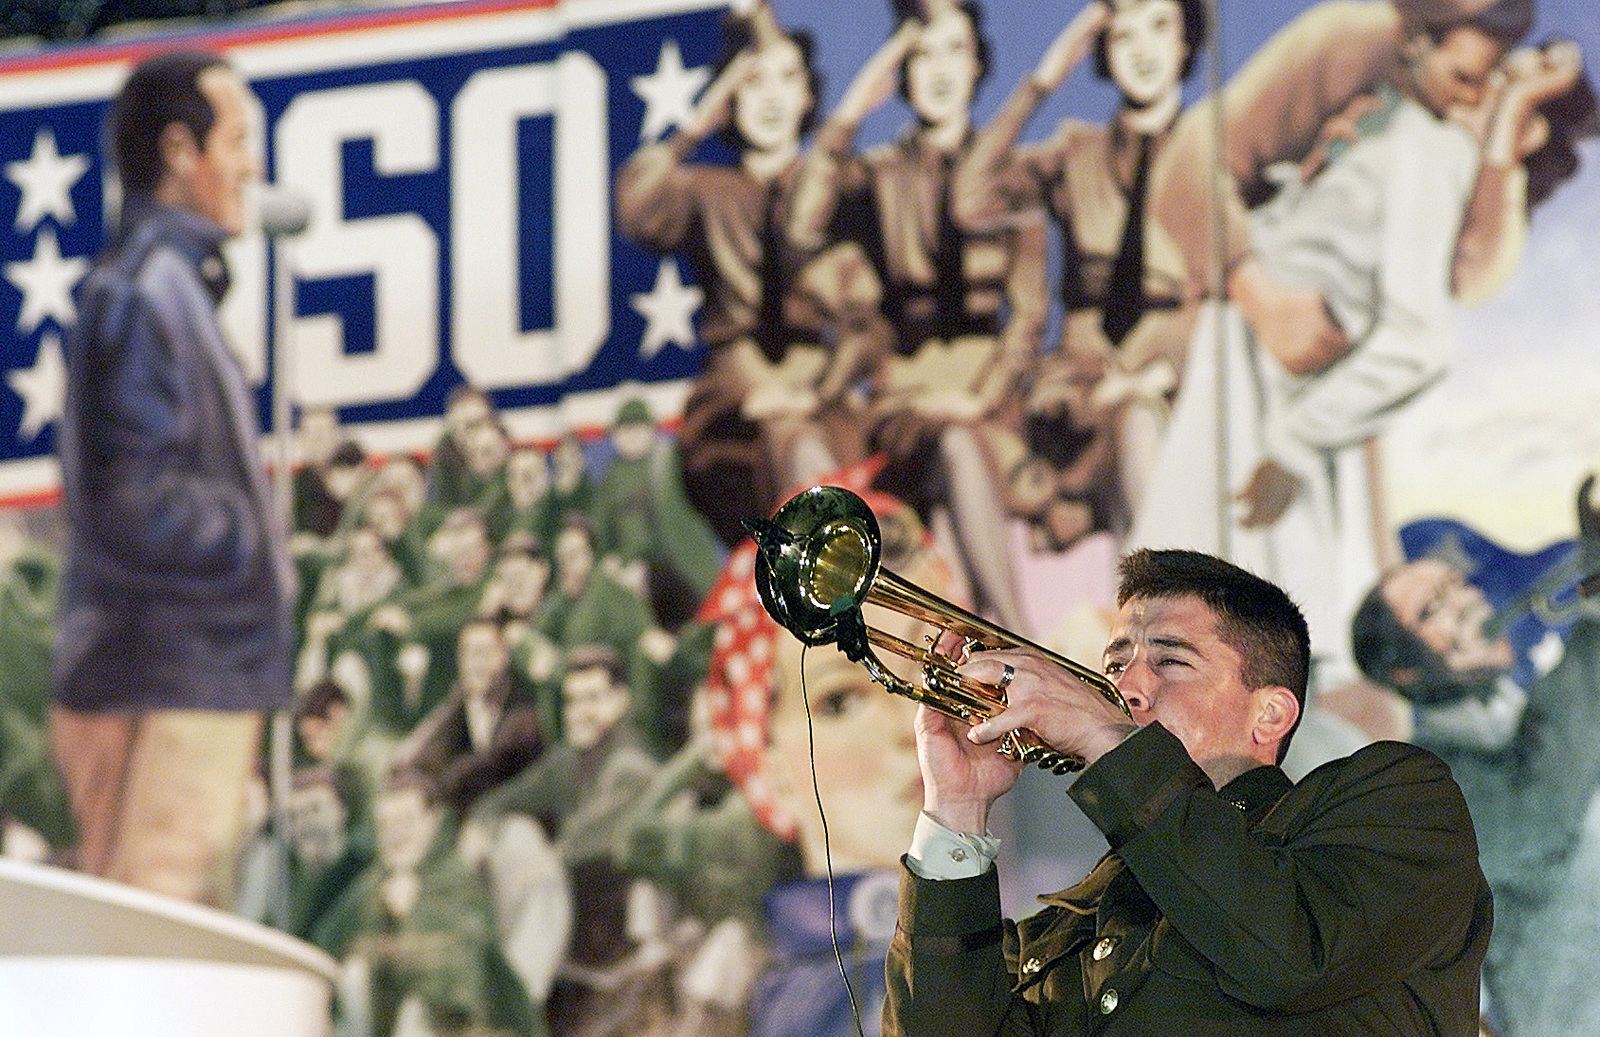 US Air Force Tops in Blue Trumpeter performs a solo during the National Football League Players Huddle Party at MacDill Air Force Base